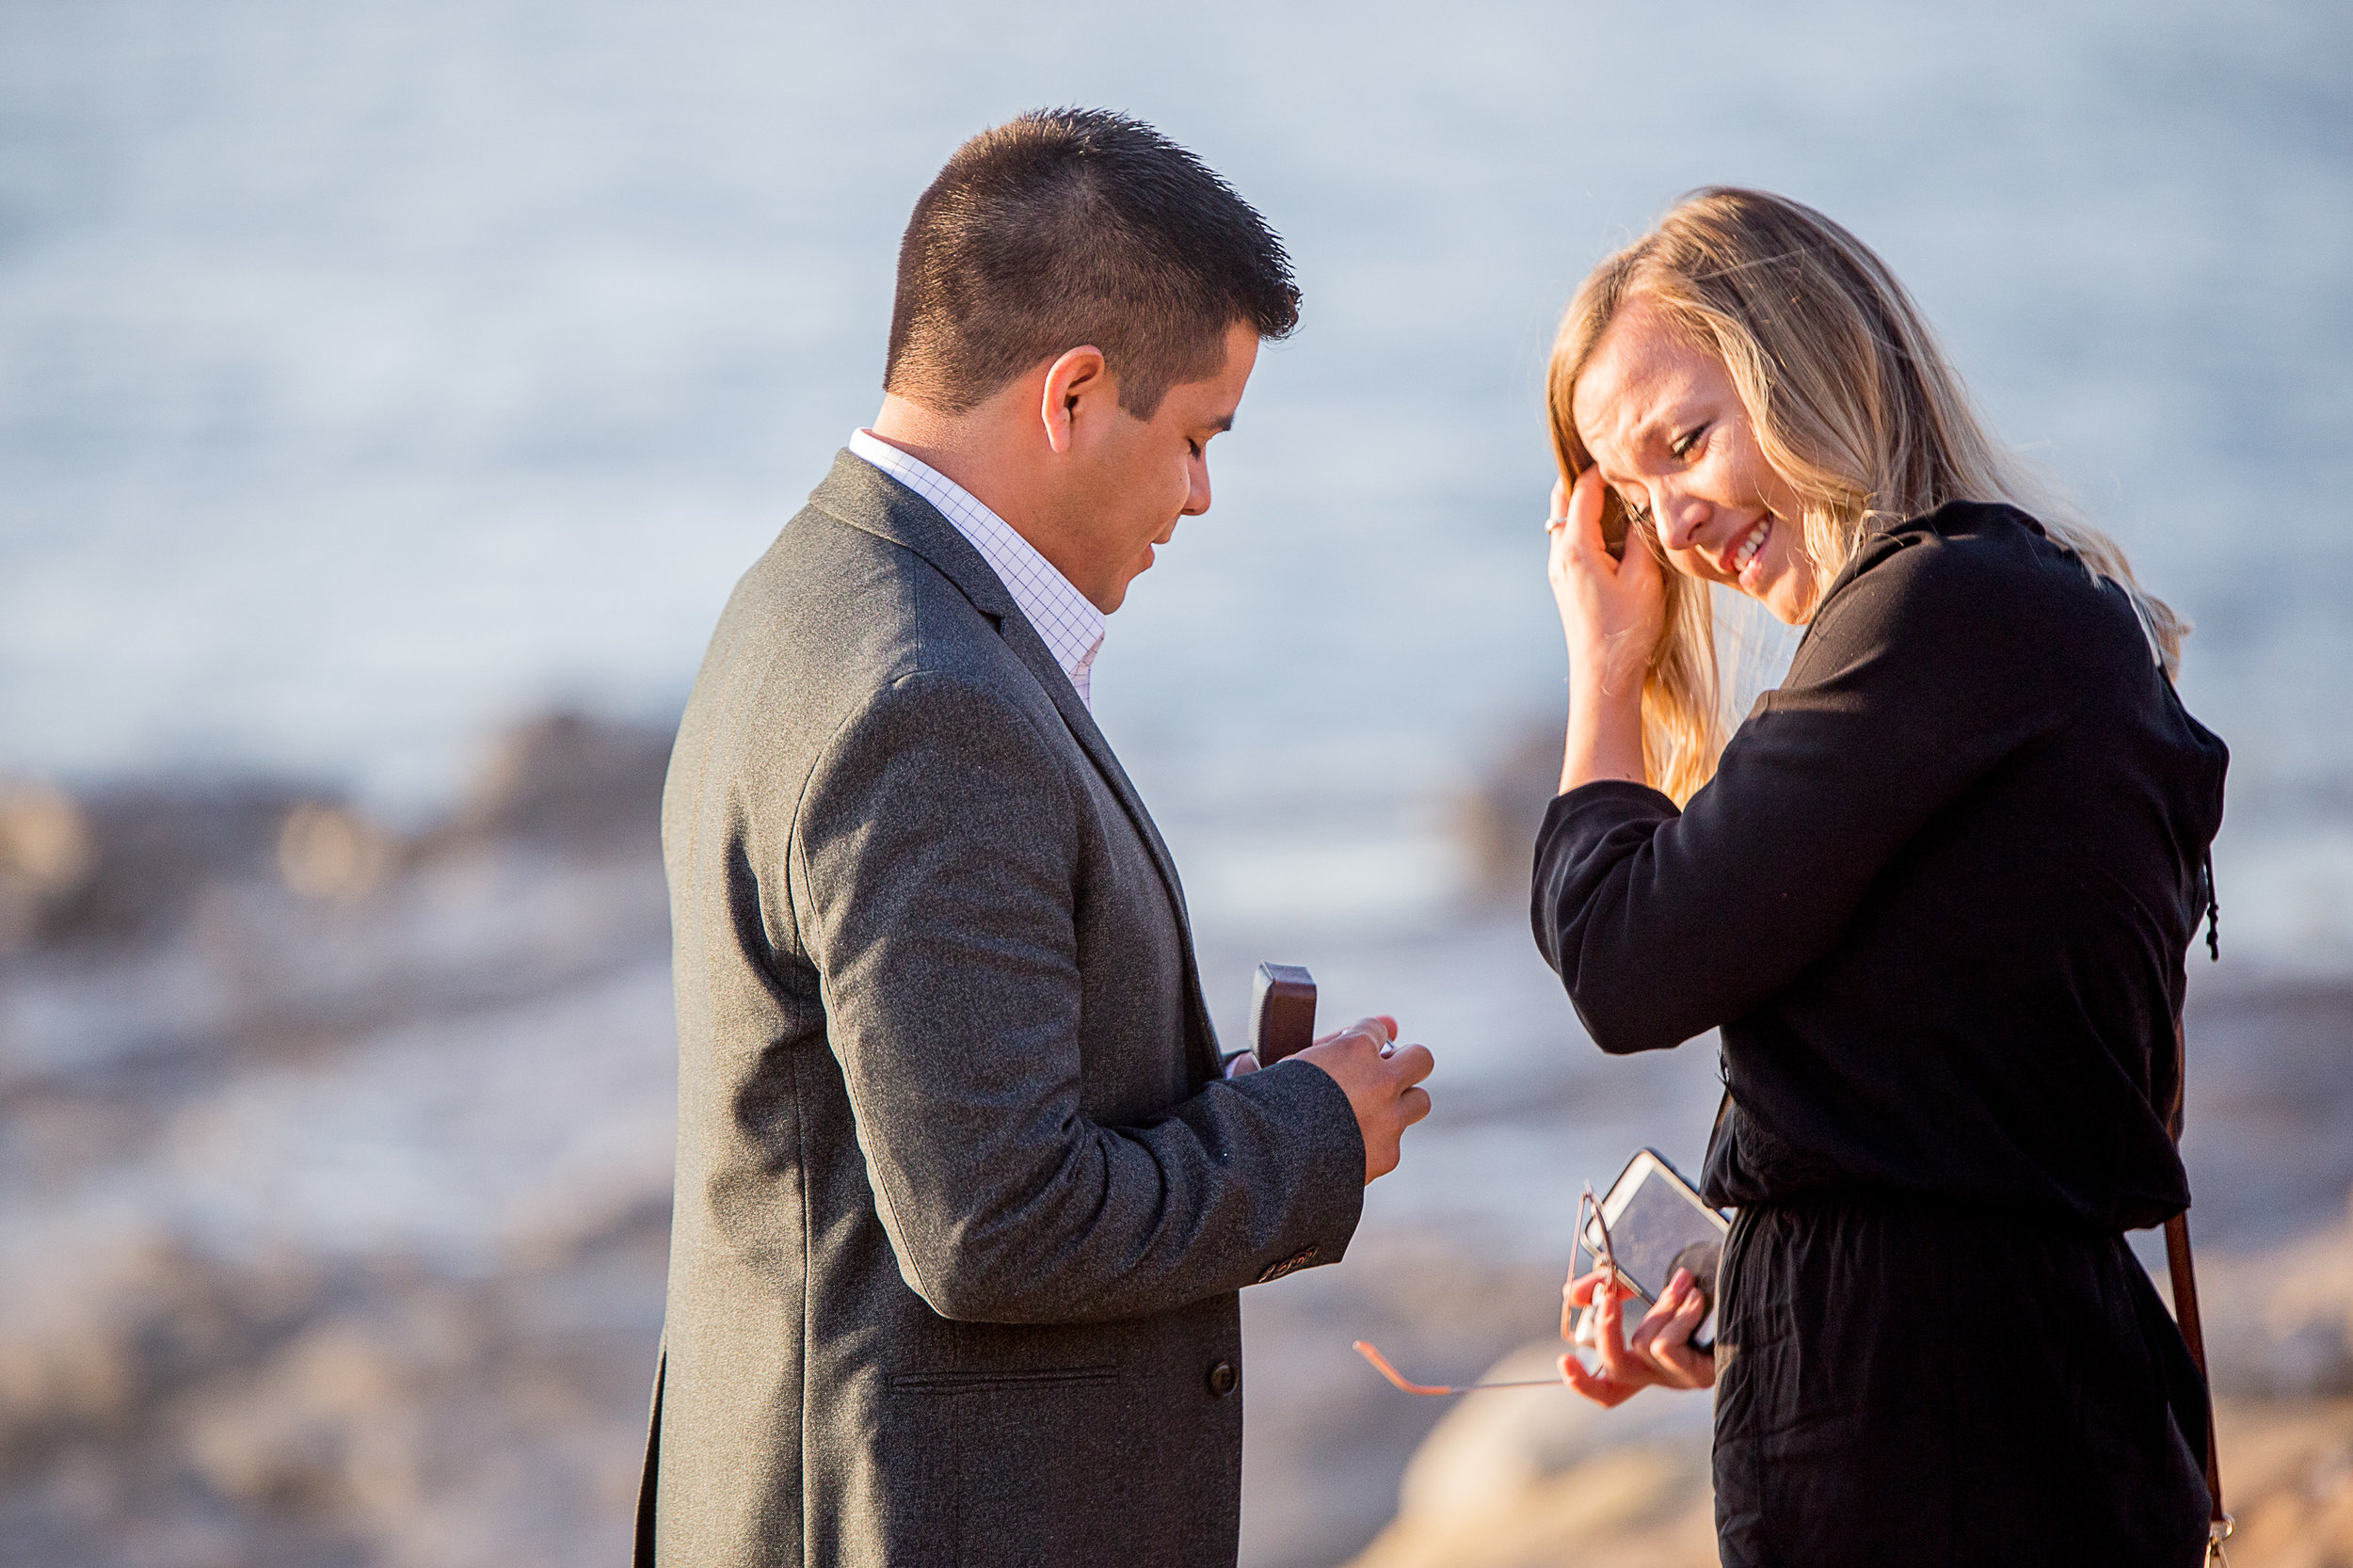 La-jolla-cove-proposal-chicago-natives-san-diego-sunset-golden-hour-love-story-engaged-alligator-head (22 of 158).jpg